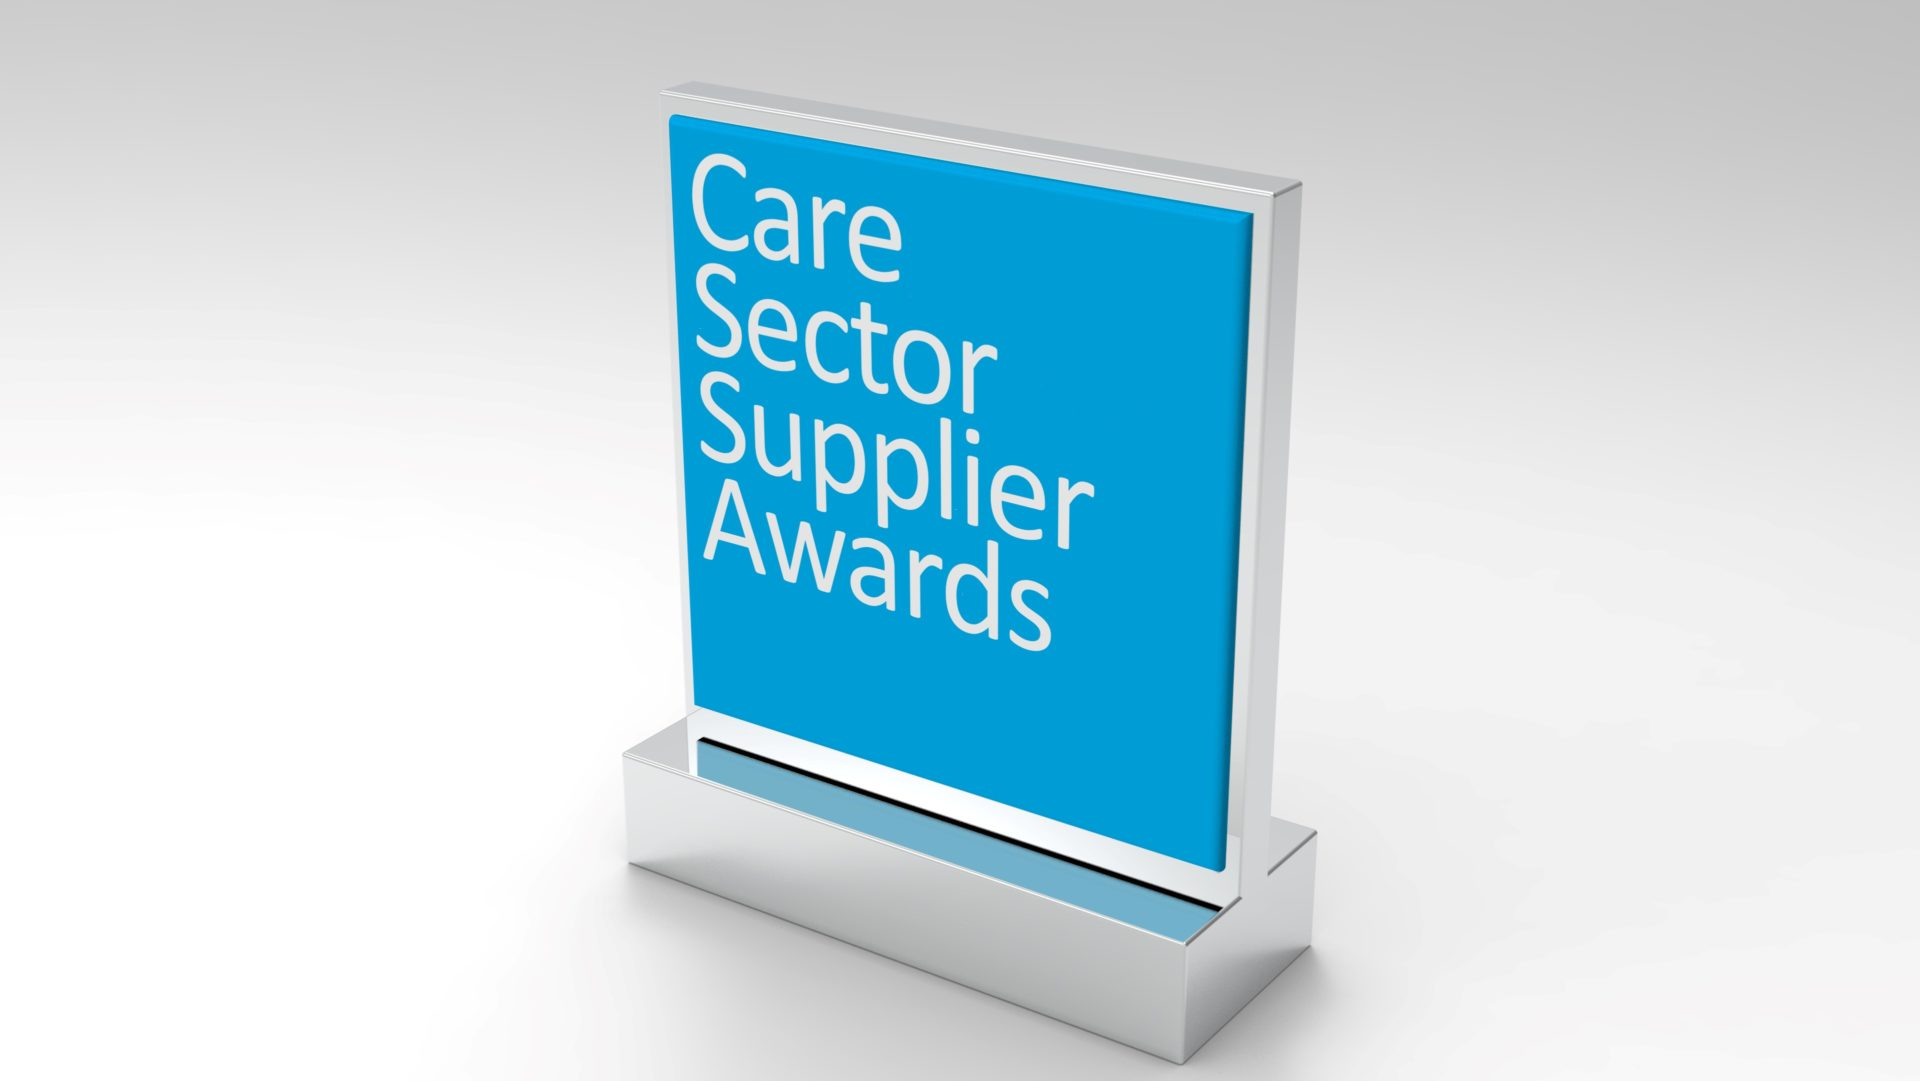 Care Sector Supplier Awards